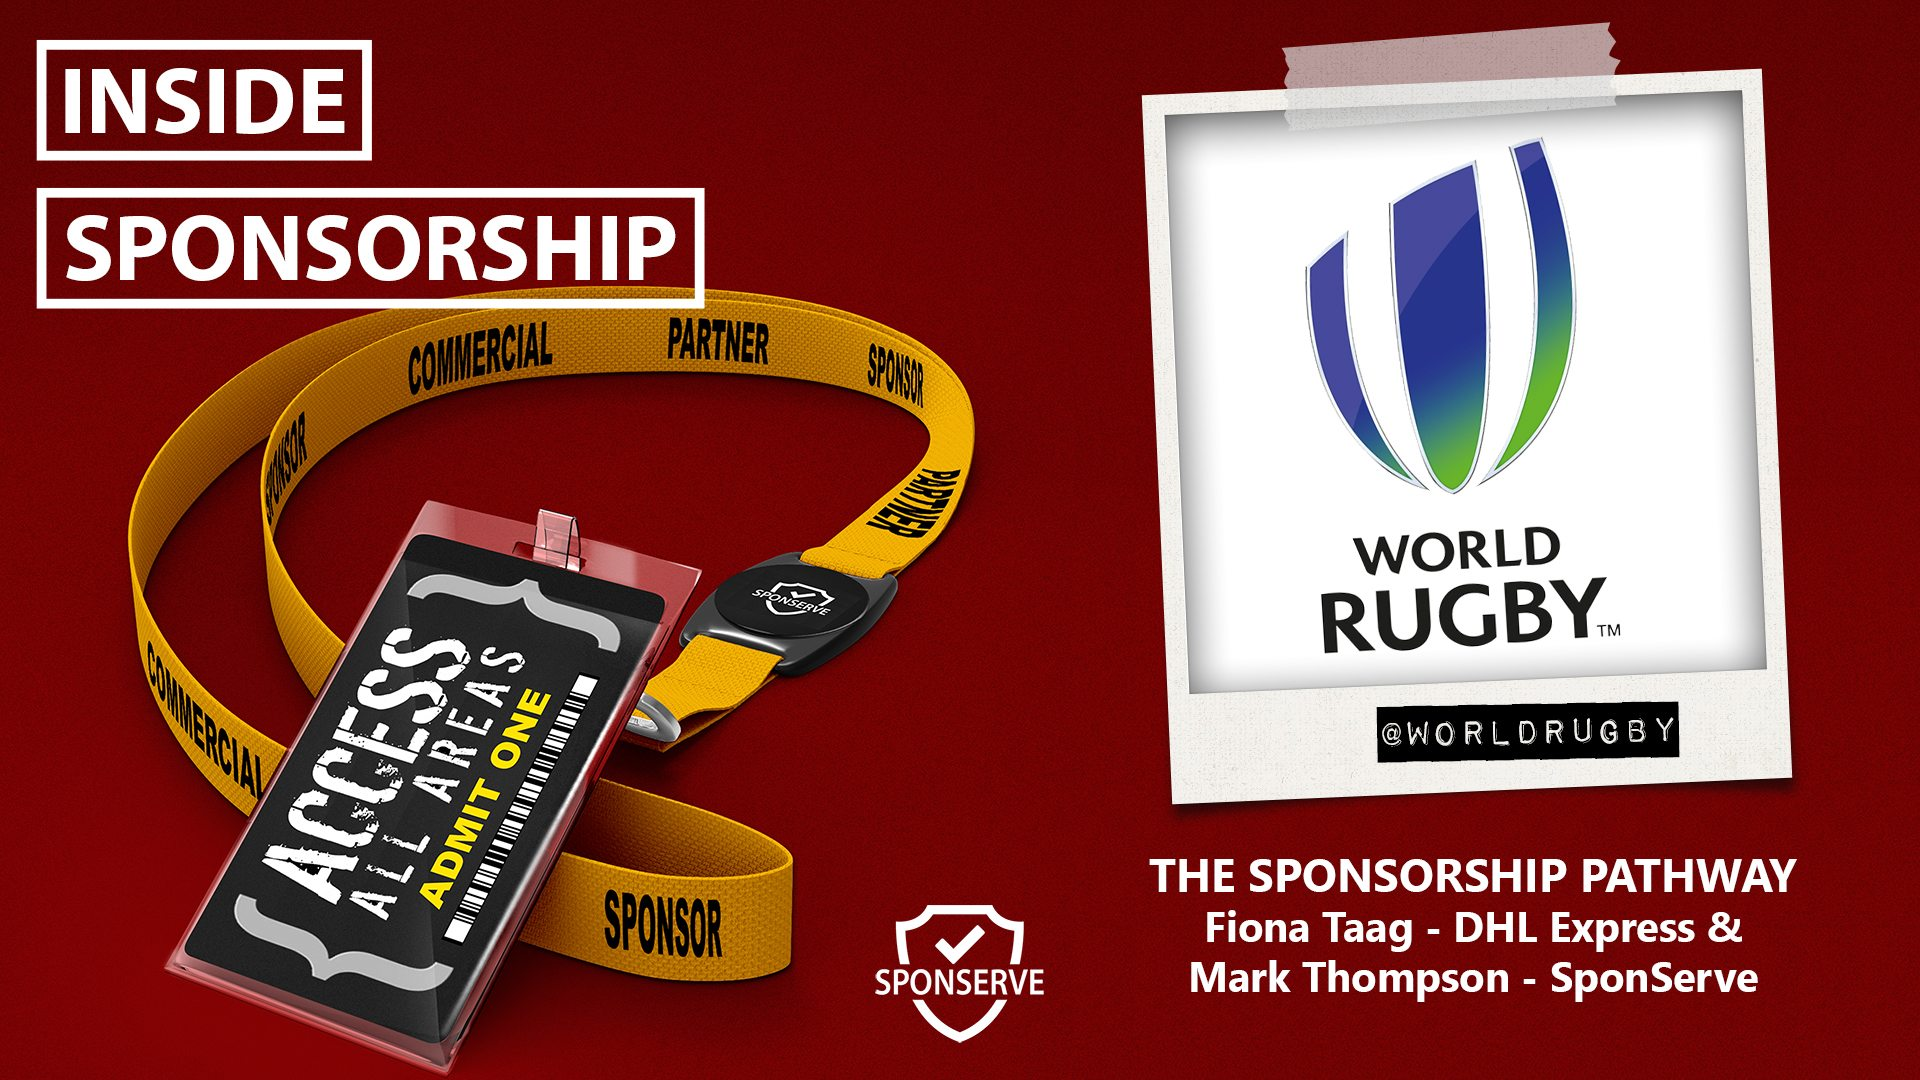 INSIDE SPONSORSHIP WORLD RUGBY SPECIAL FIONA TAAG DHL AND MARK THOMPSON SPONSERVE